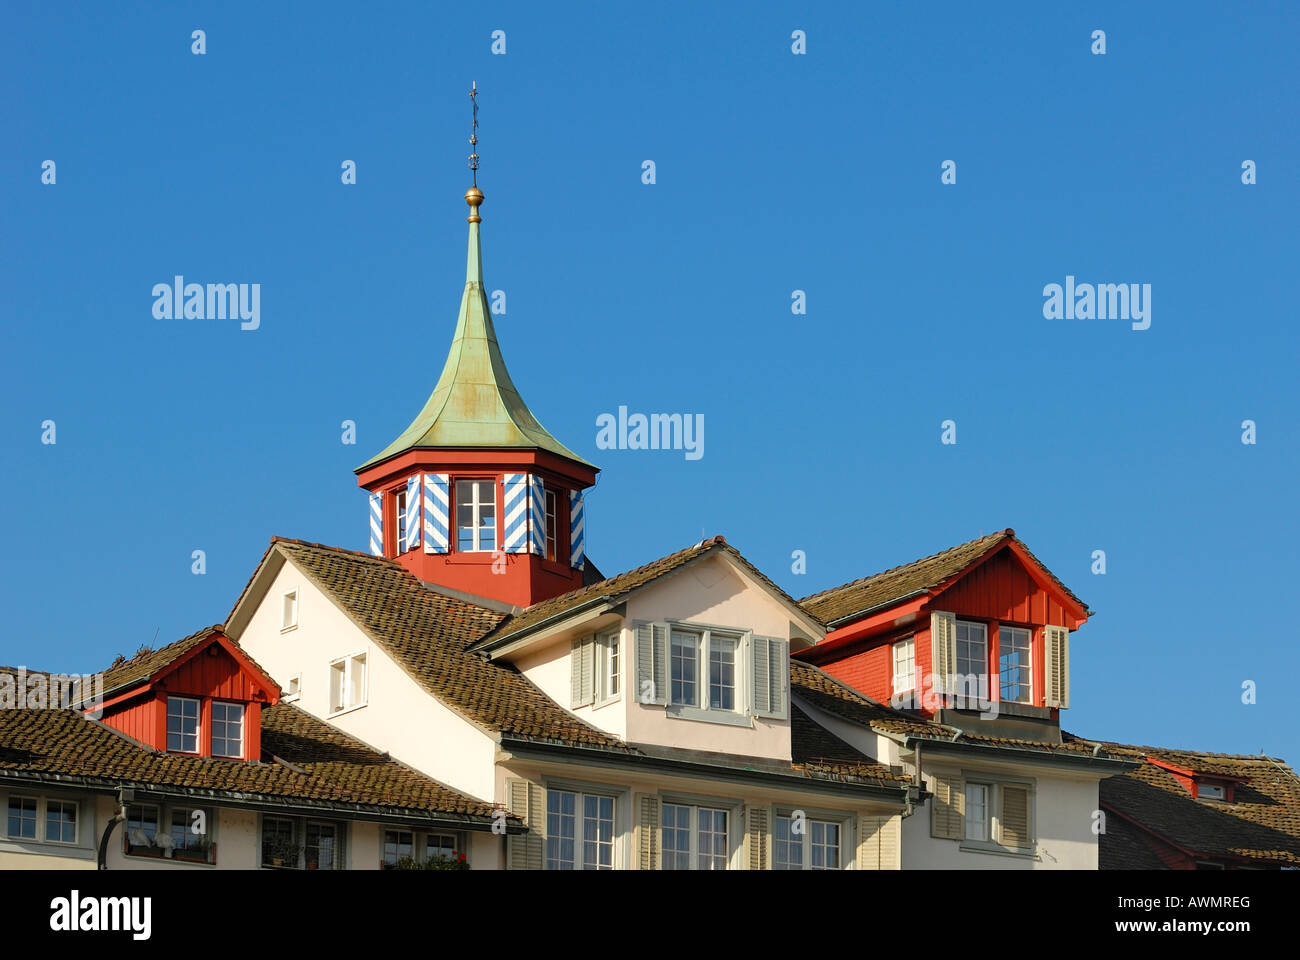 Zuerich - dormers and turrets in the old town - Switzerland, Europe. Stock Photo